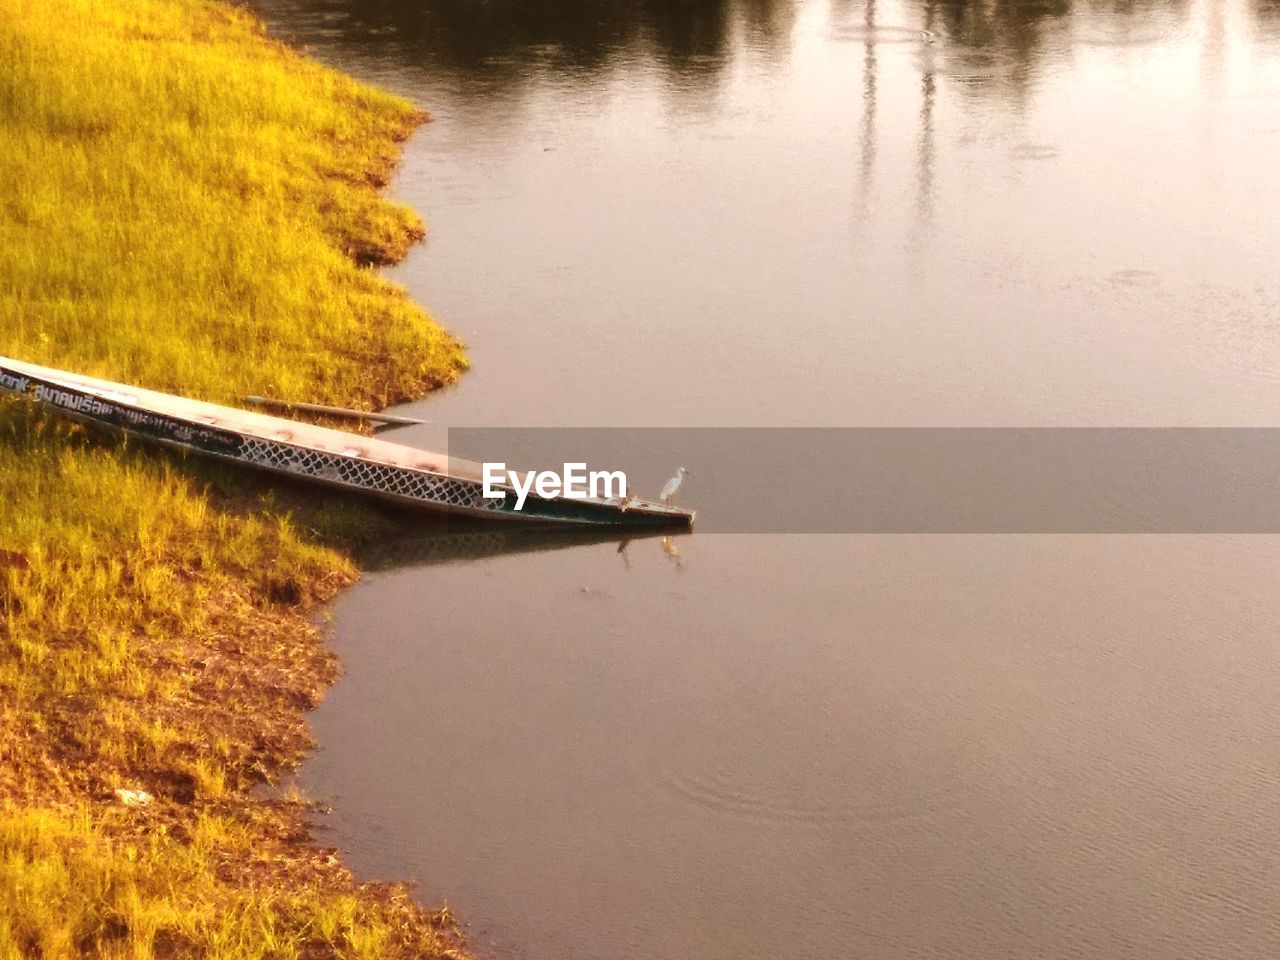 water, reflection, nautical vessel, no people, tranquility, nature, lake, high angle view, day, transportation, tranquil scene, beauty in nature, outdoors, waterfront, plant, mode of transportation, scenics - nature, non-urban scene